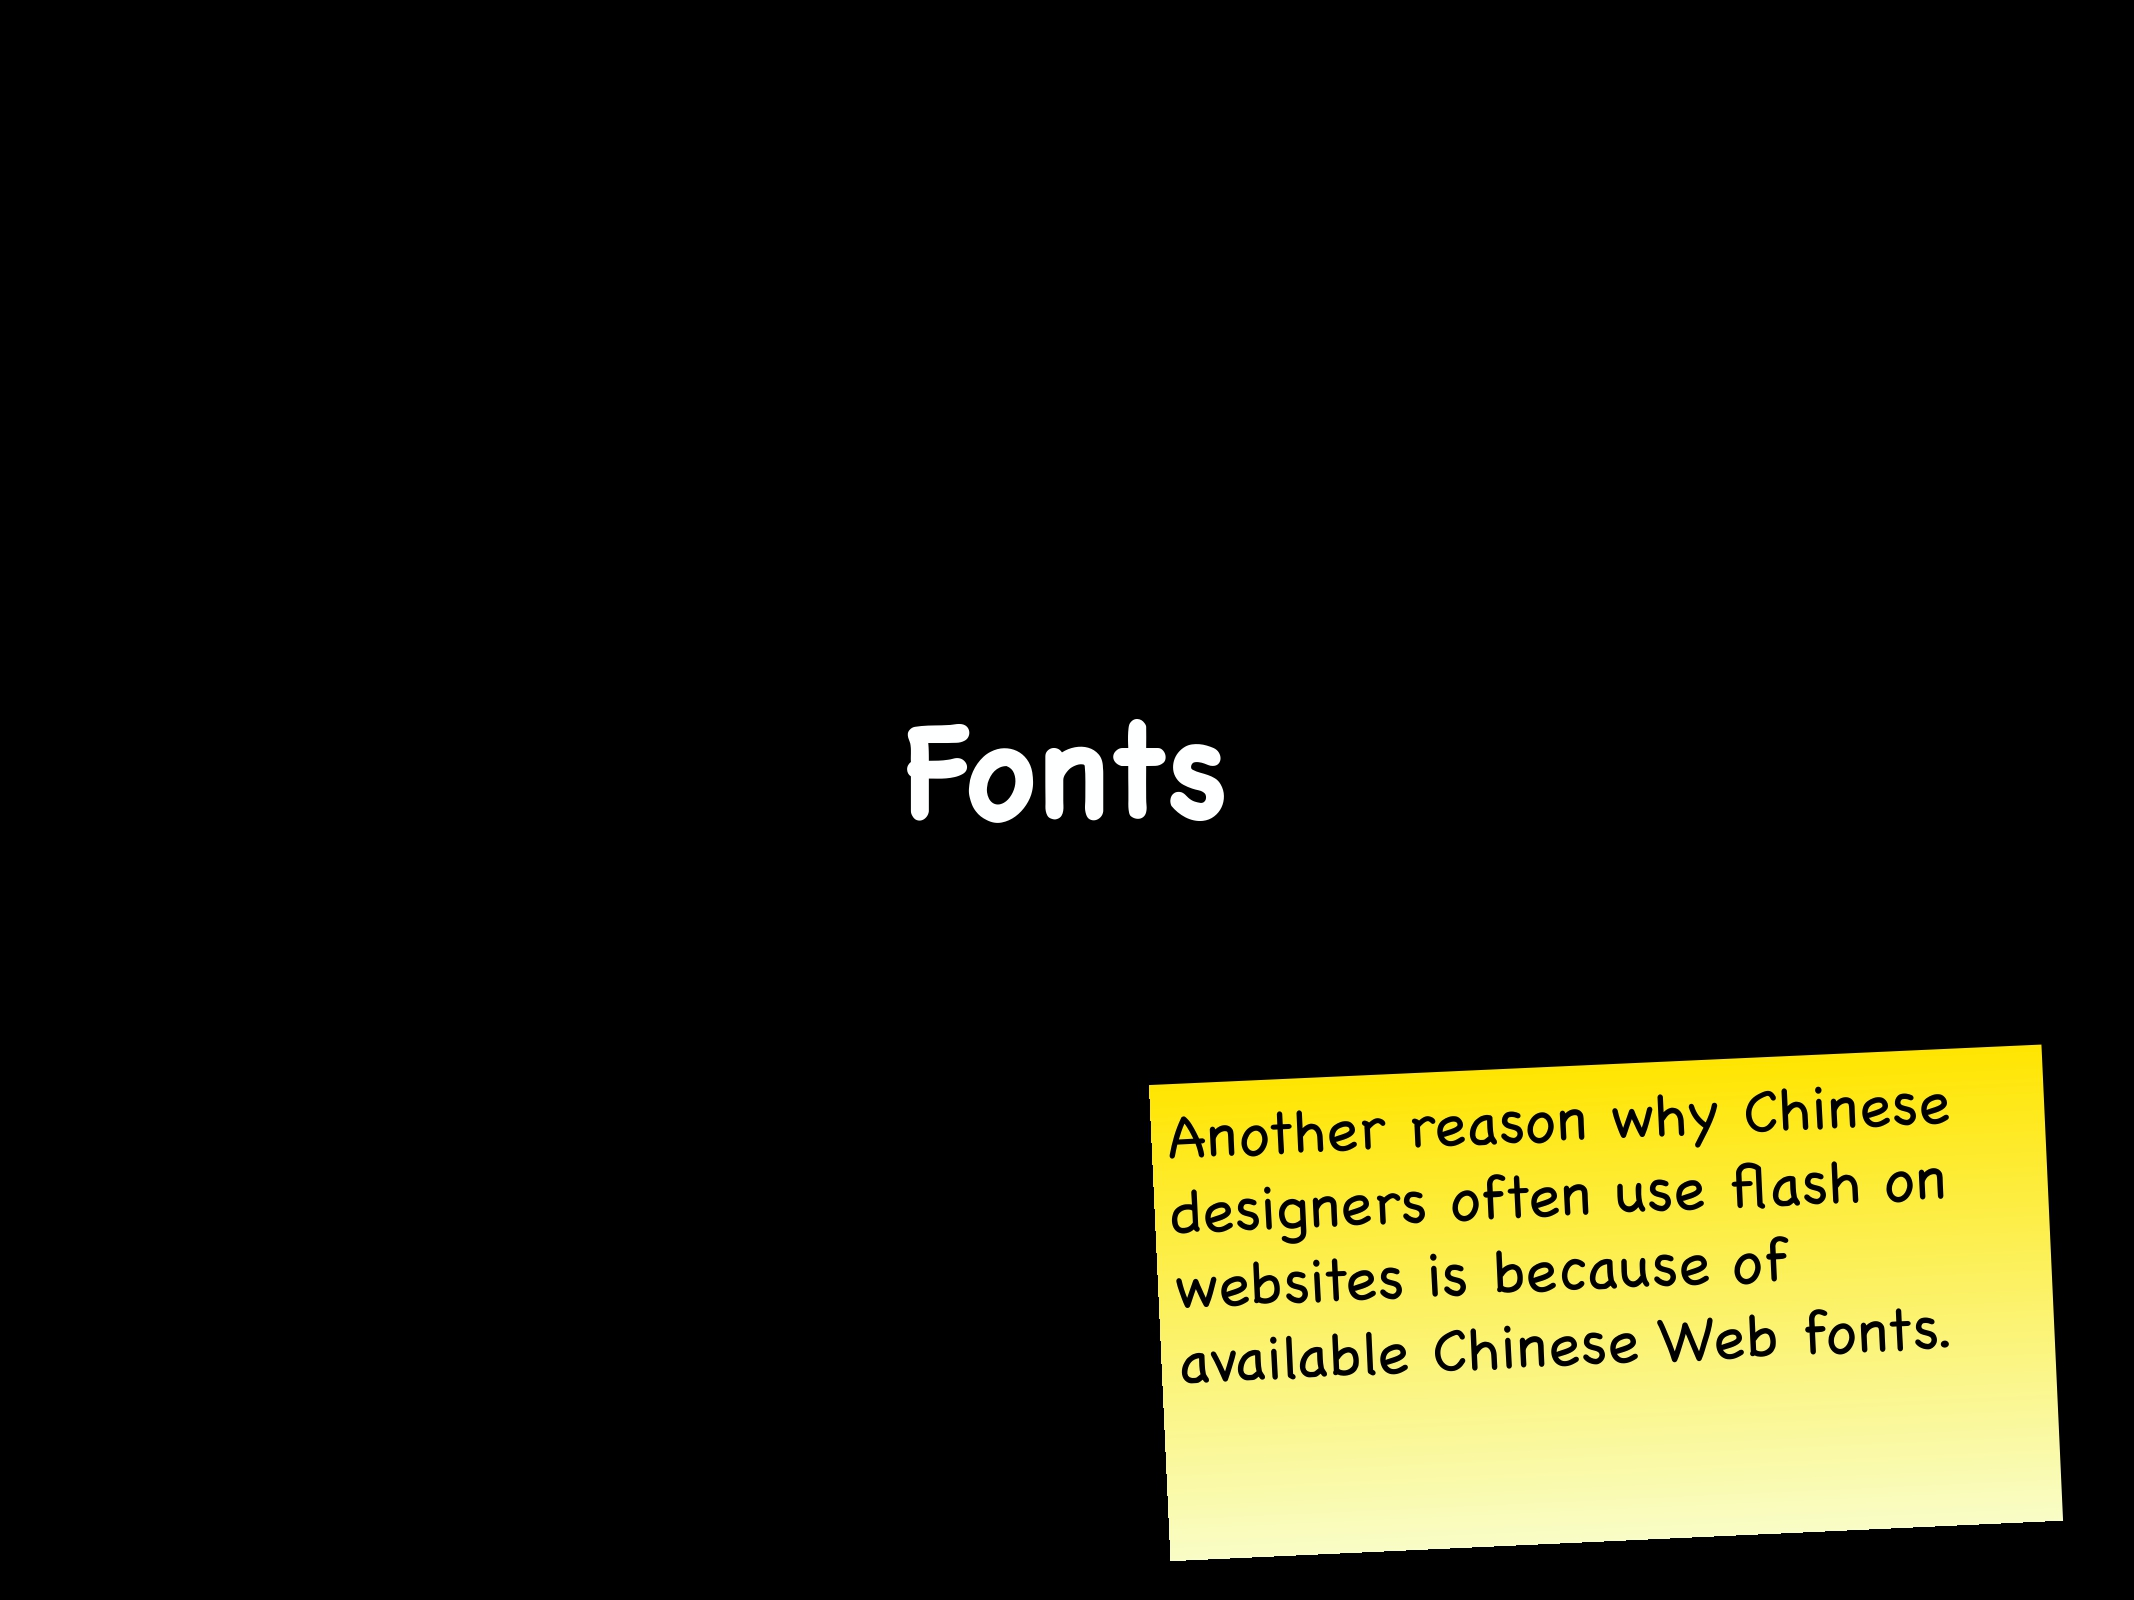 Chinese Web Design Patterns 2011_pages-to-jpg-0038.jpg